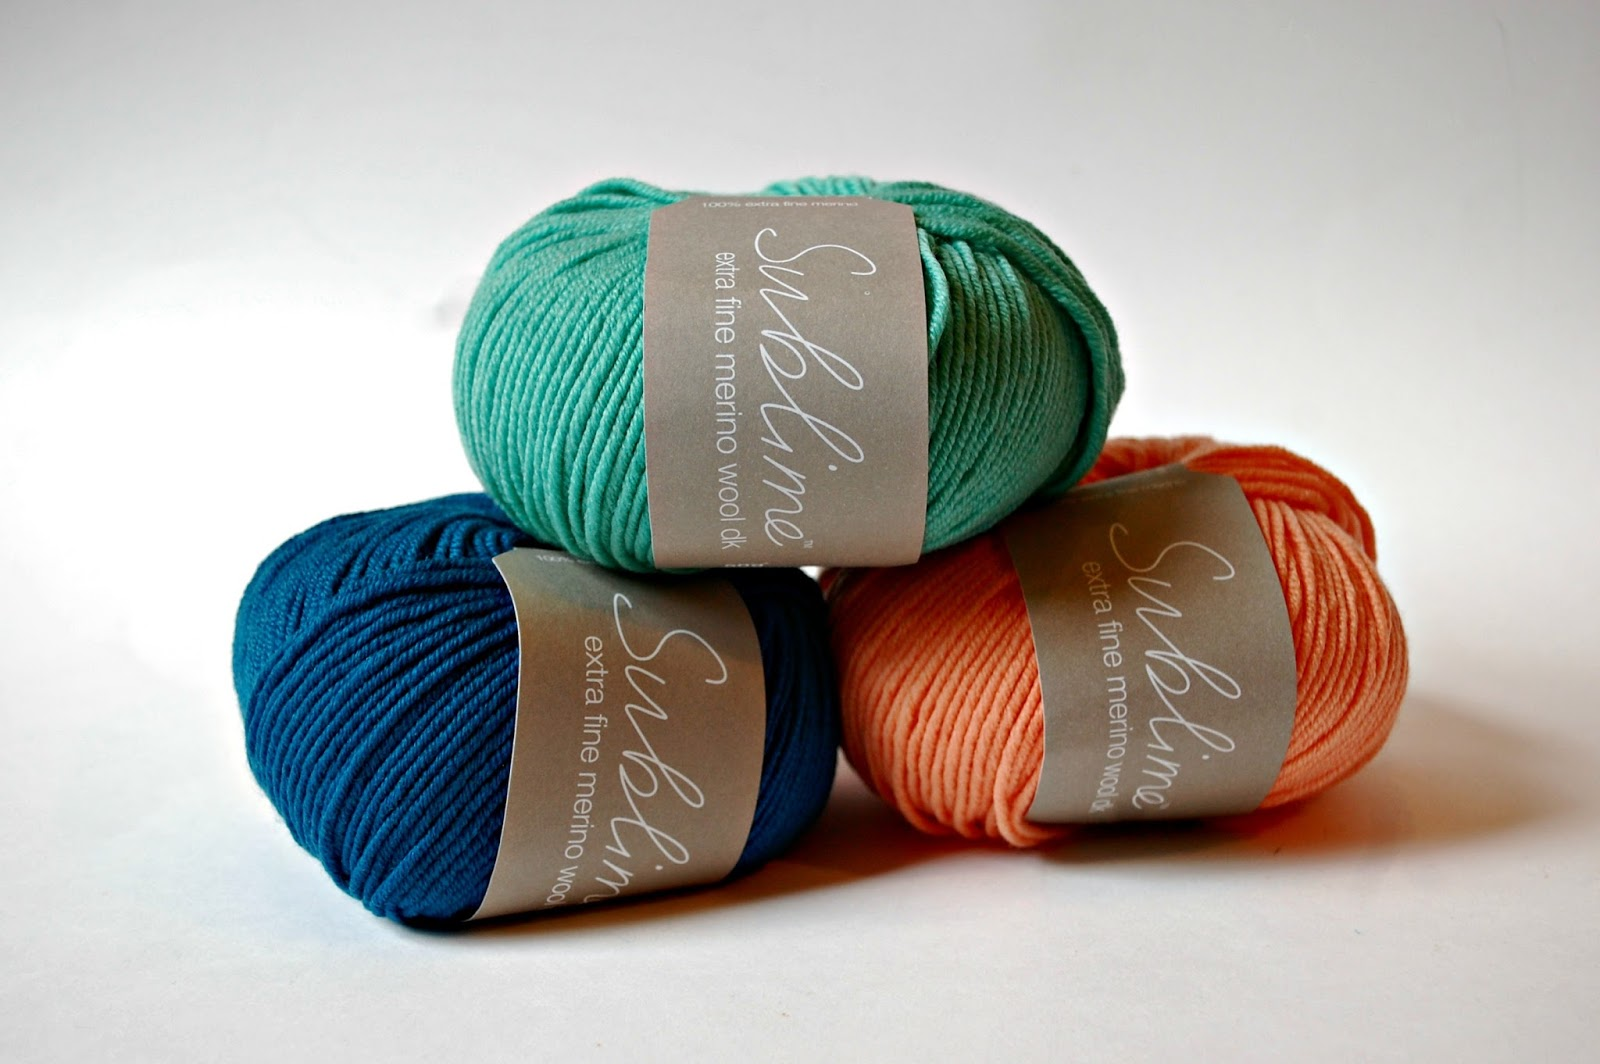 406aae052eed Something I didn t know before my visit to Sirdar was that they supply the  luxury brand of yarns Sublime. I had heard of Sublime